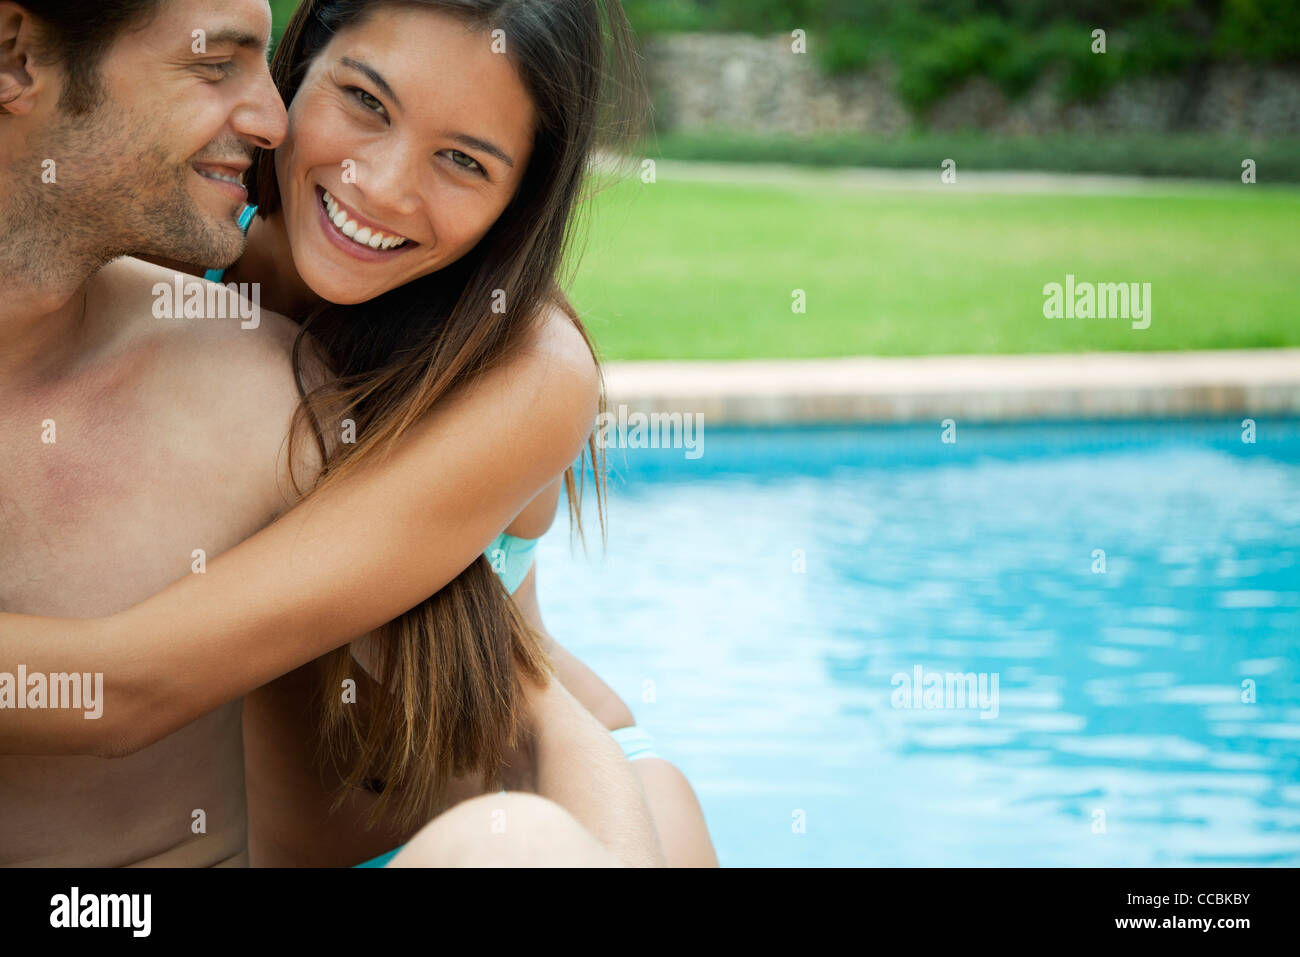 Couple embracing by swimming pool, portrait Stock Photo